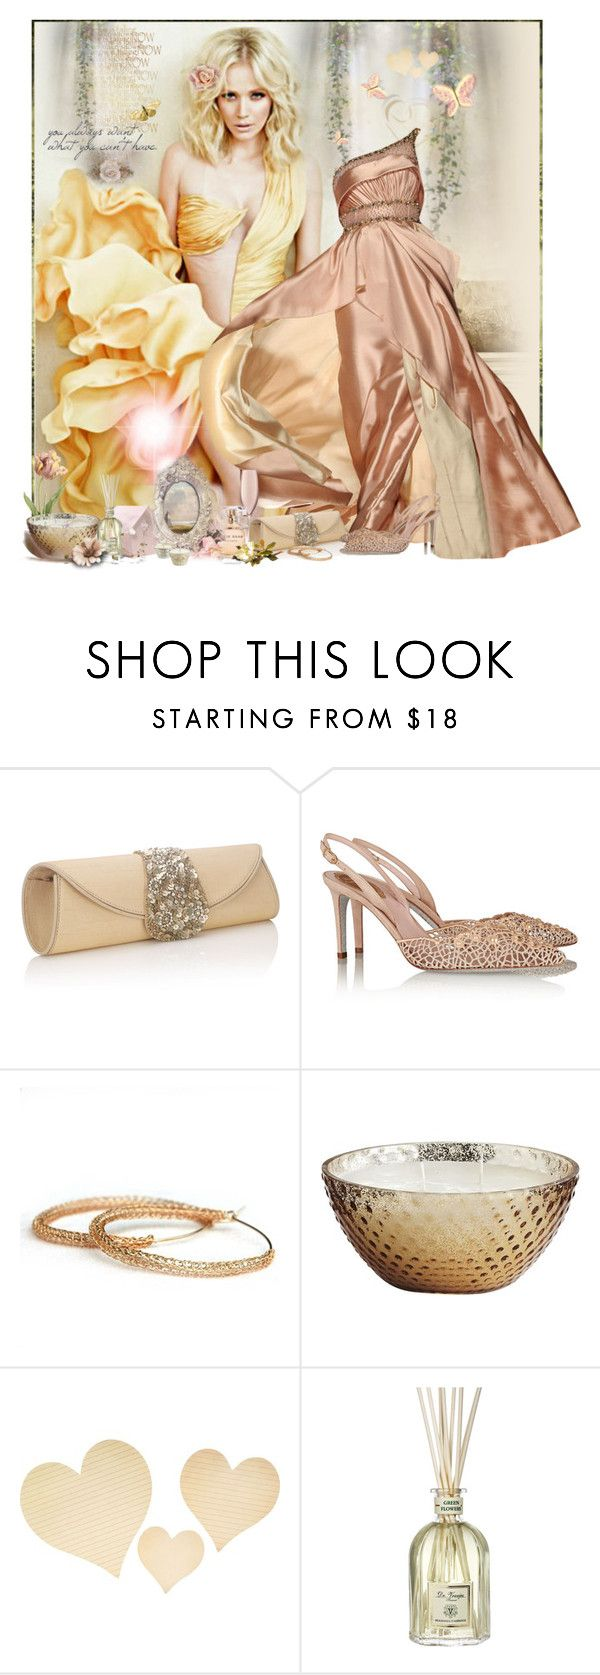 """You Always Want What You Can't Have!!"" by jewelsinthecrown ❤ liked on Polyvore featuring John Lewis, Monsoon, René Caovilla, YooLa, Pier 1 Imports, Clips, Dr. Vranjes, Elie Saab, women's clothing and women's fashion"